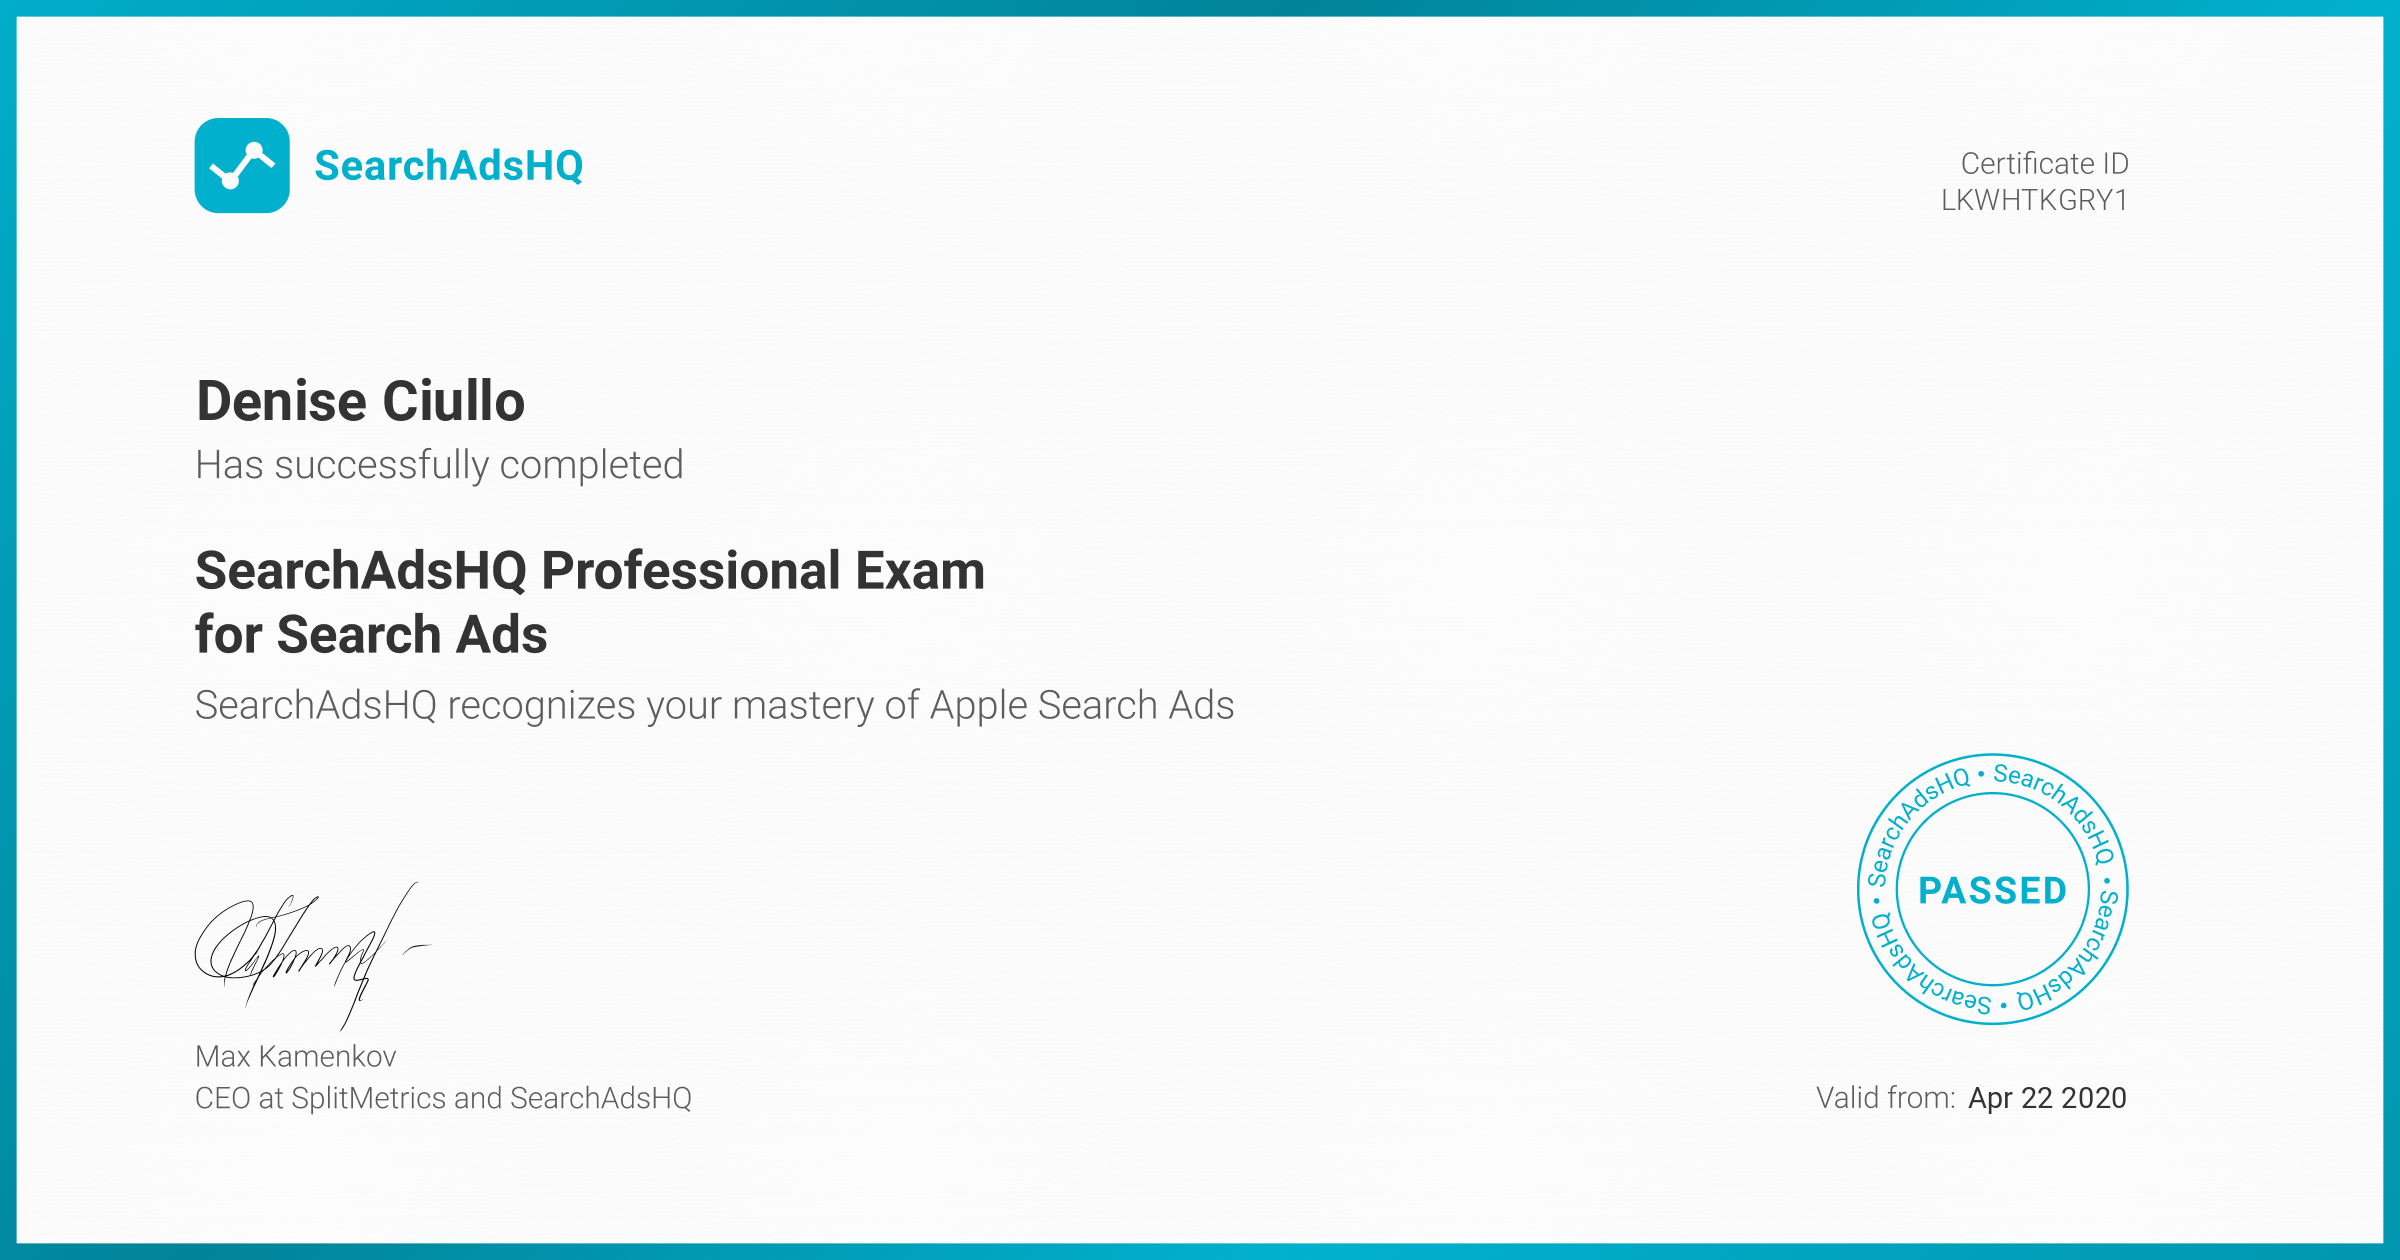 Certificate for Denise Ciullo | SearchAdsHQ Professional Exam for Search Ads